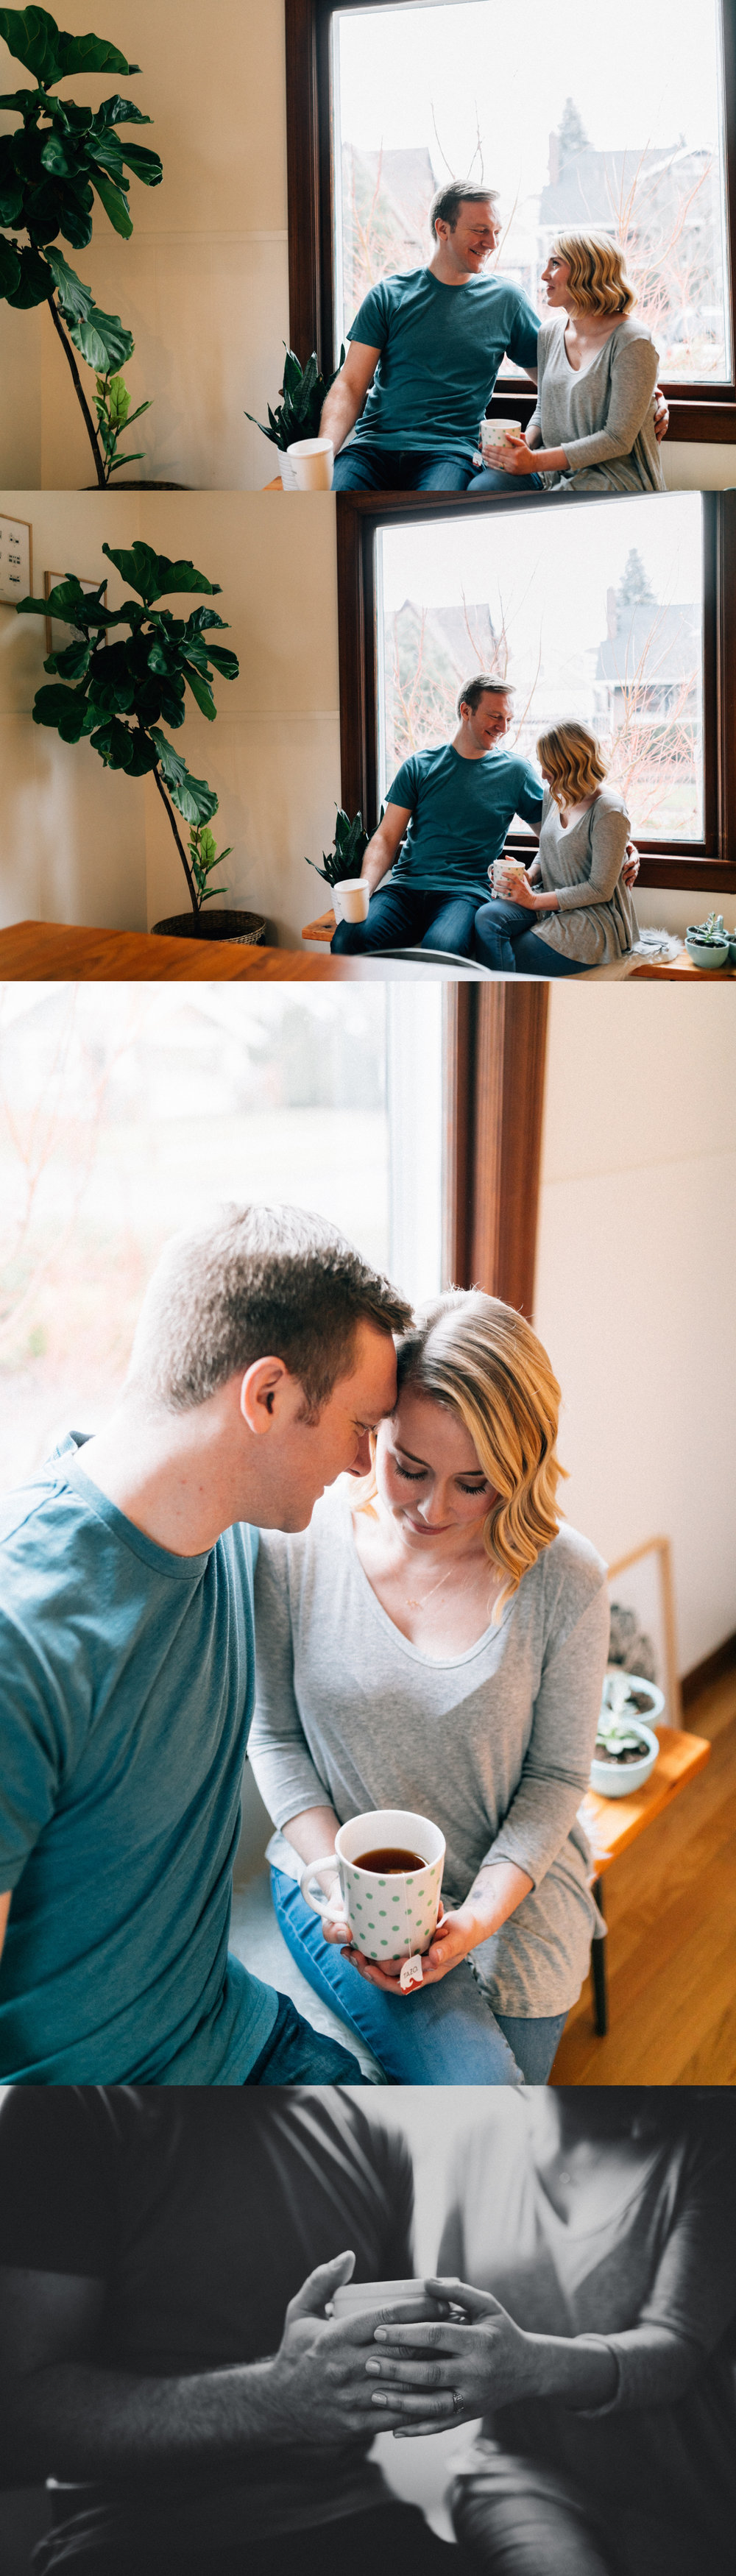 seattle in home engagement lifestyle couples photos wedding photographer washington pnw-11.jpg